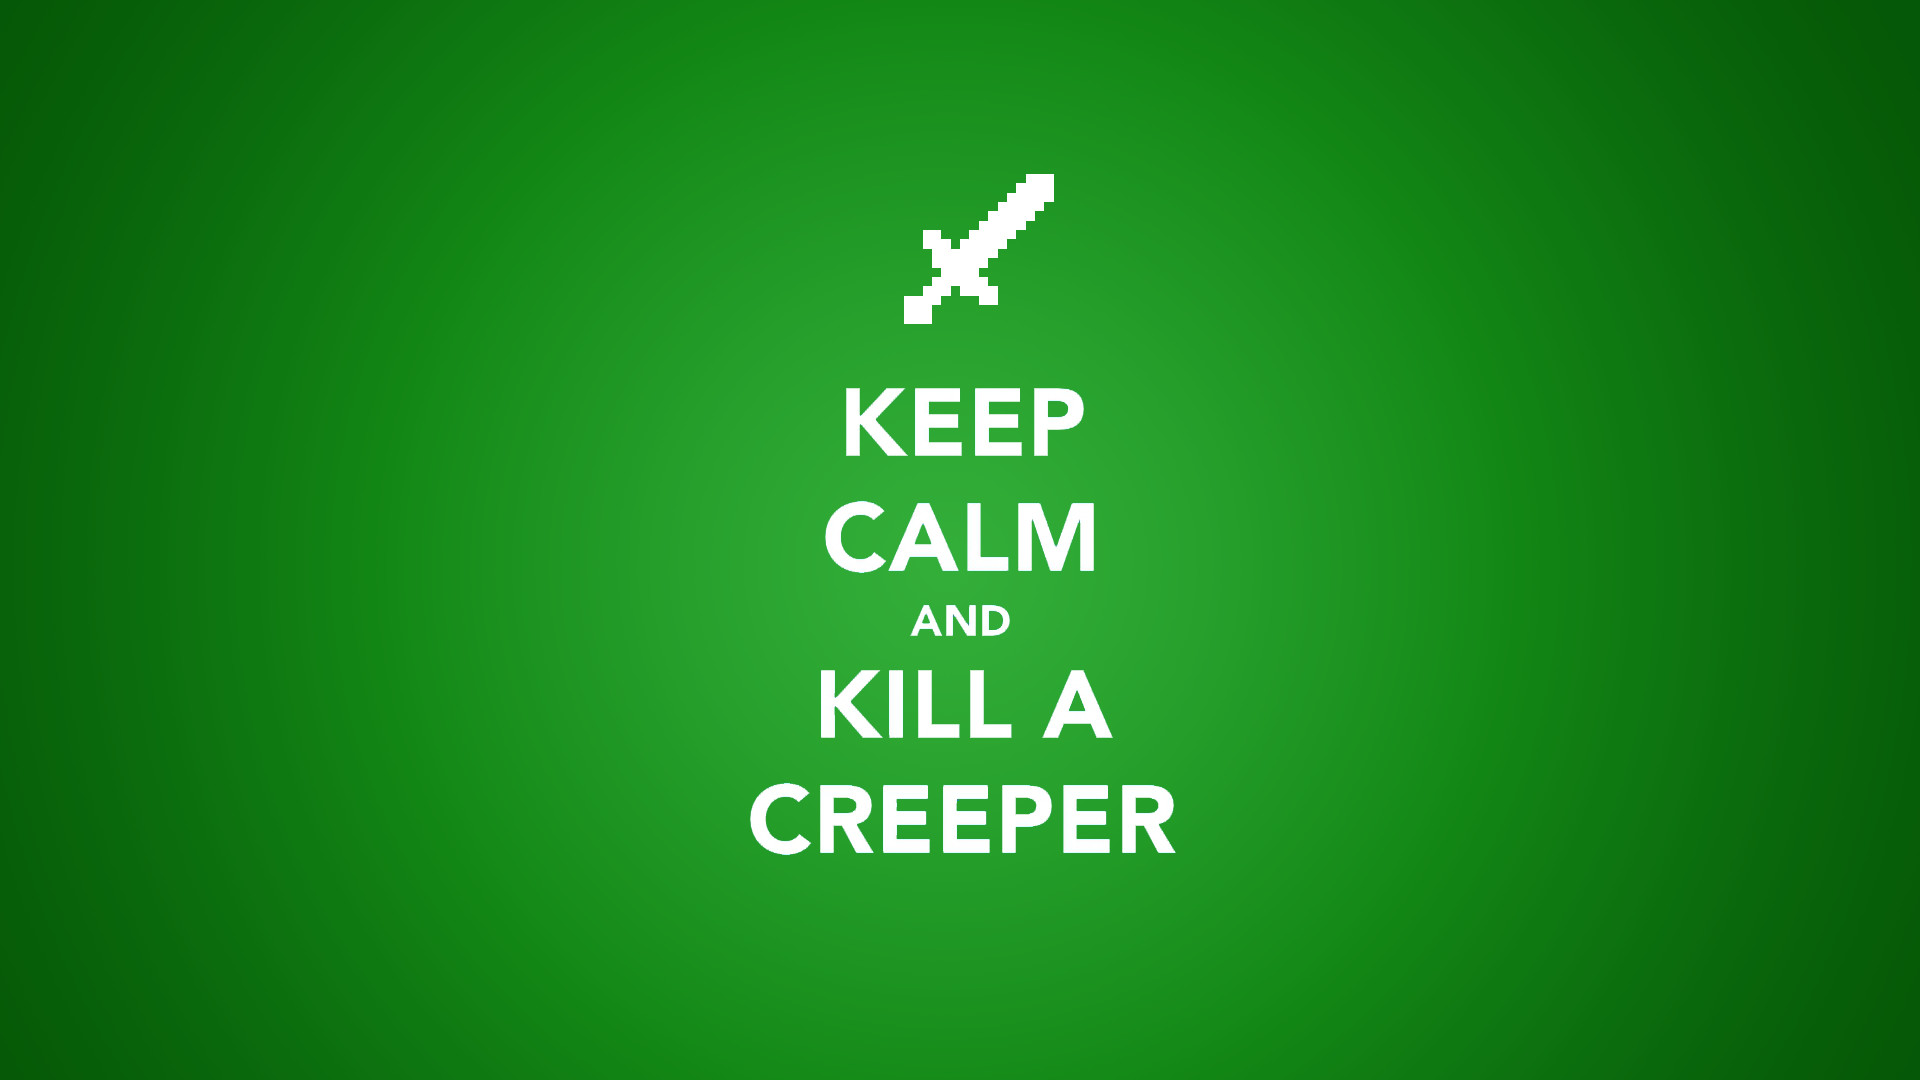 1920x1080 Creeper Green Keep Calm And Minecraft Minimalistic Simple Text